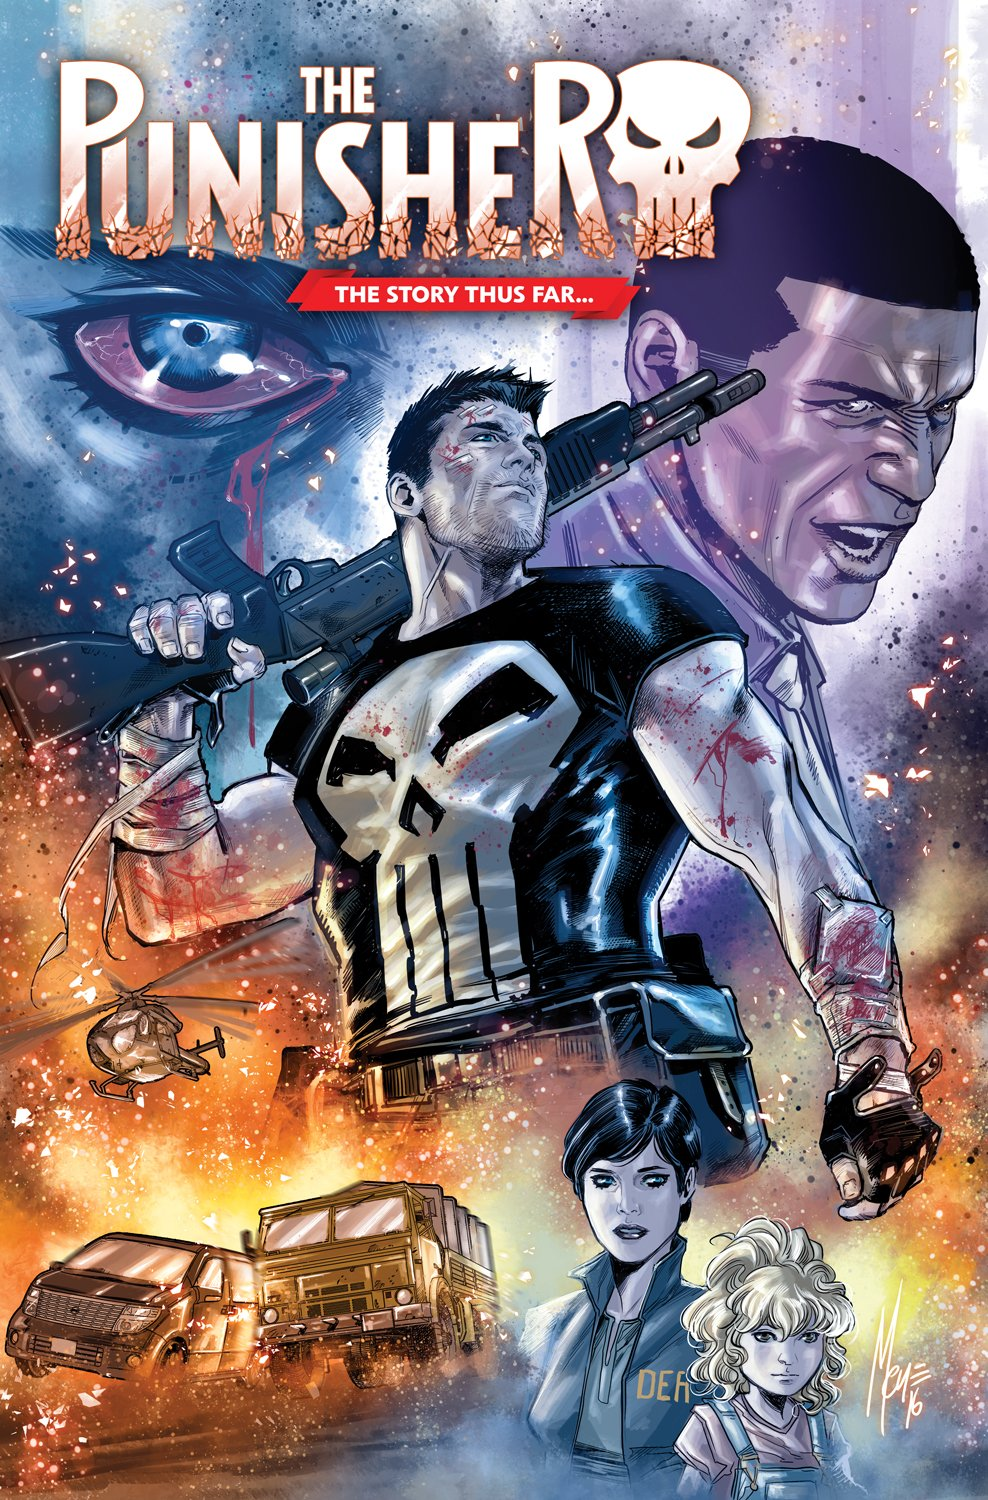 Variant Cover to Punisher #7 by Marco Checchetto.